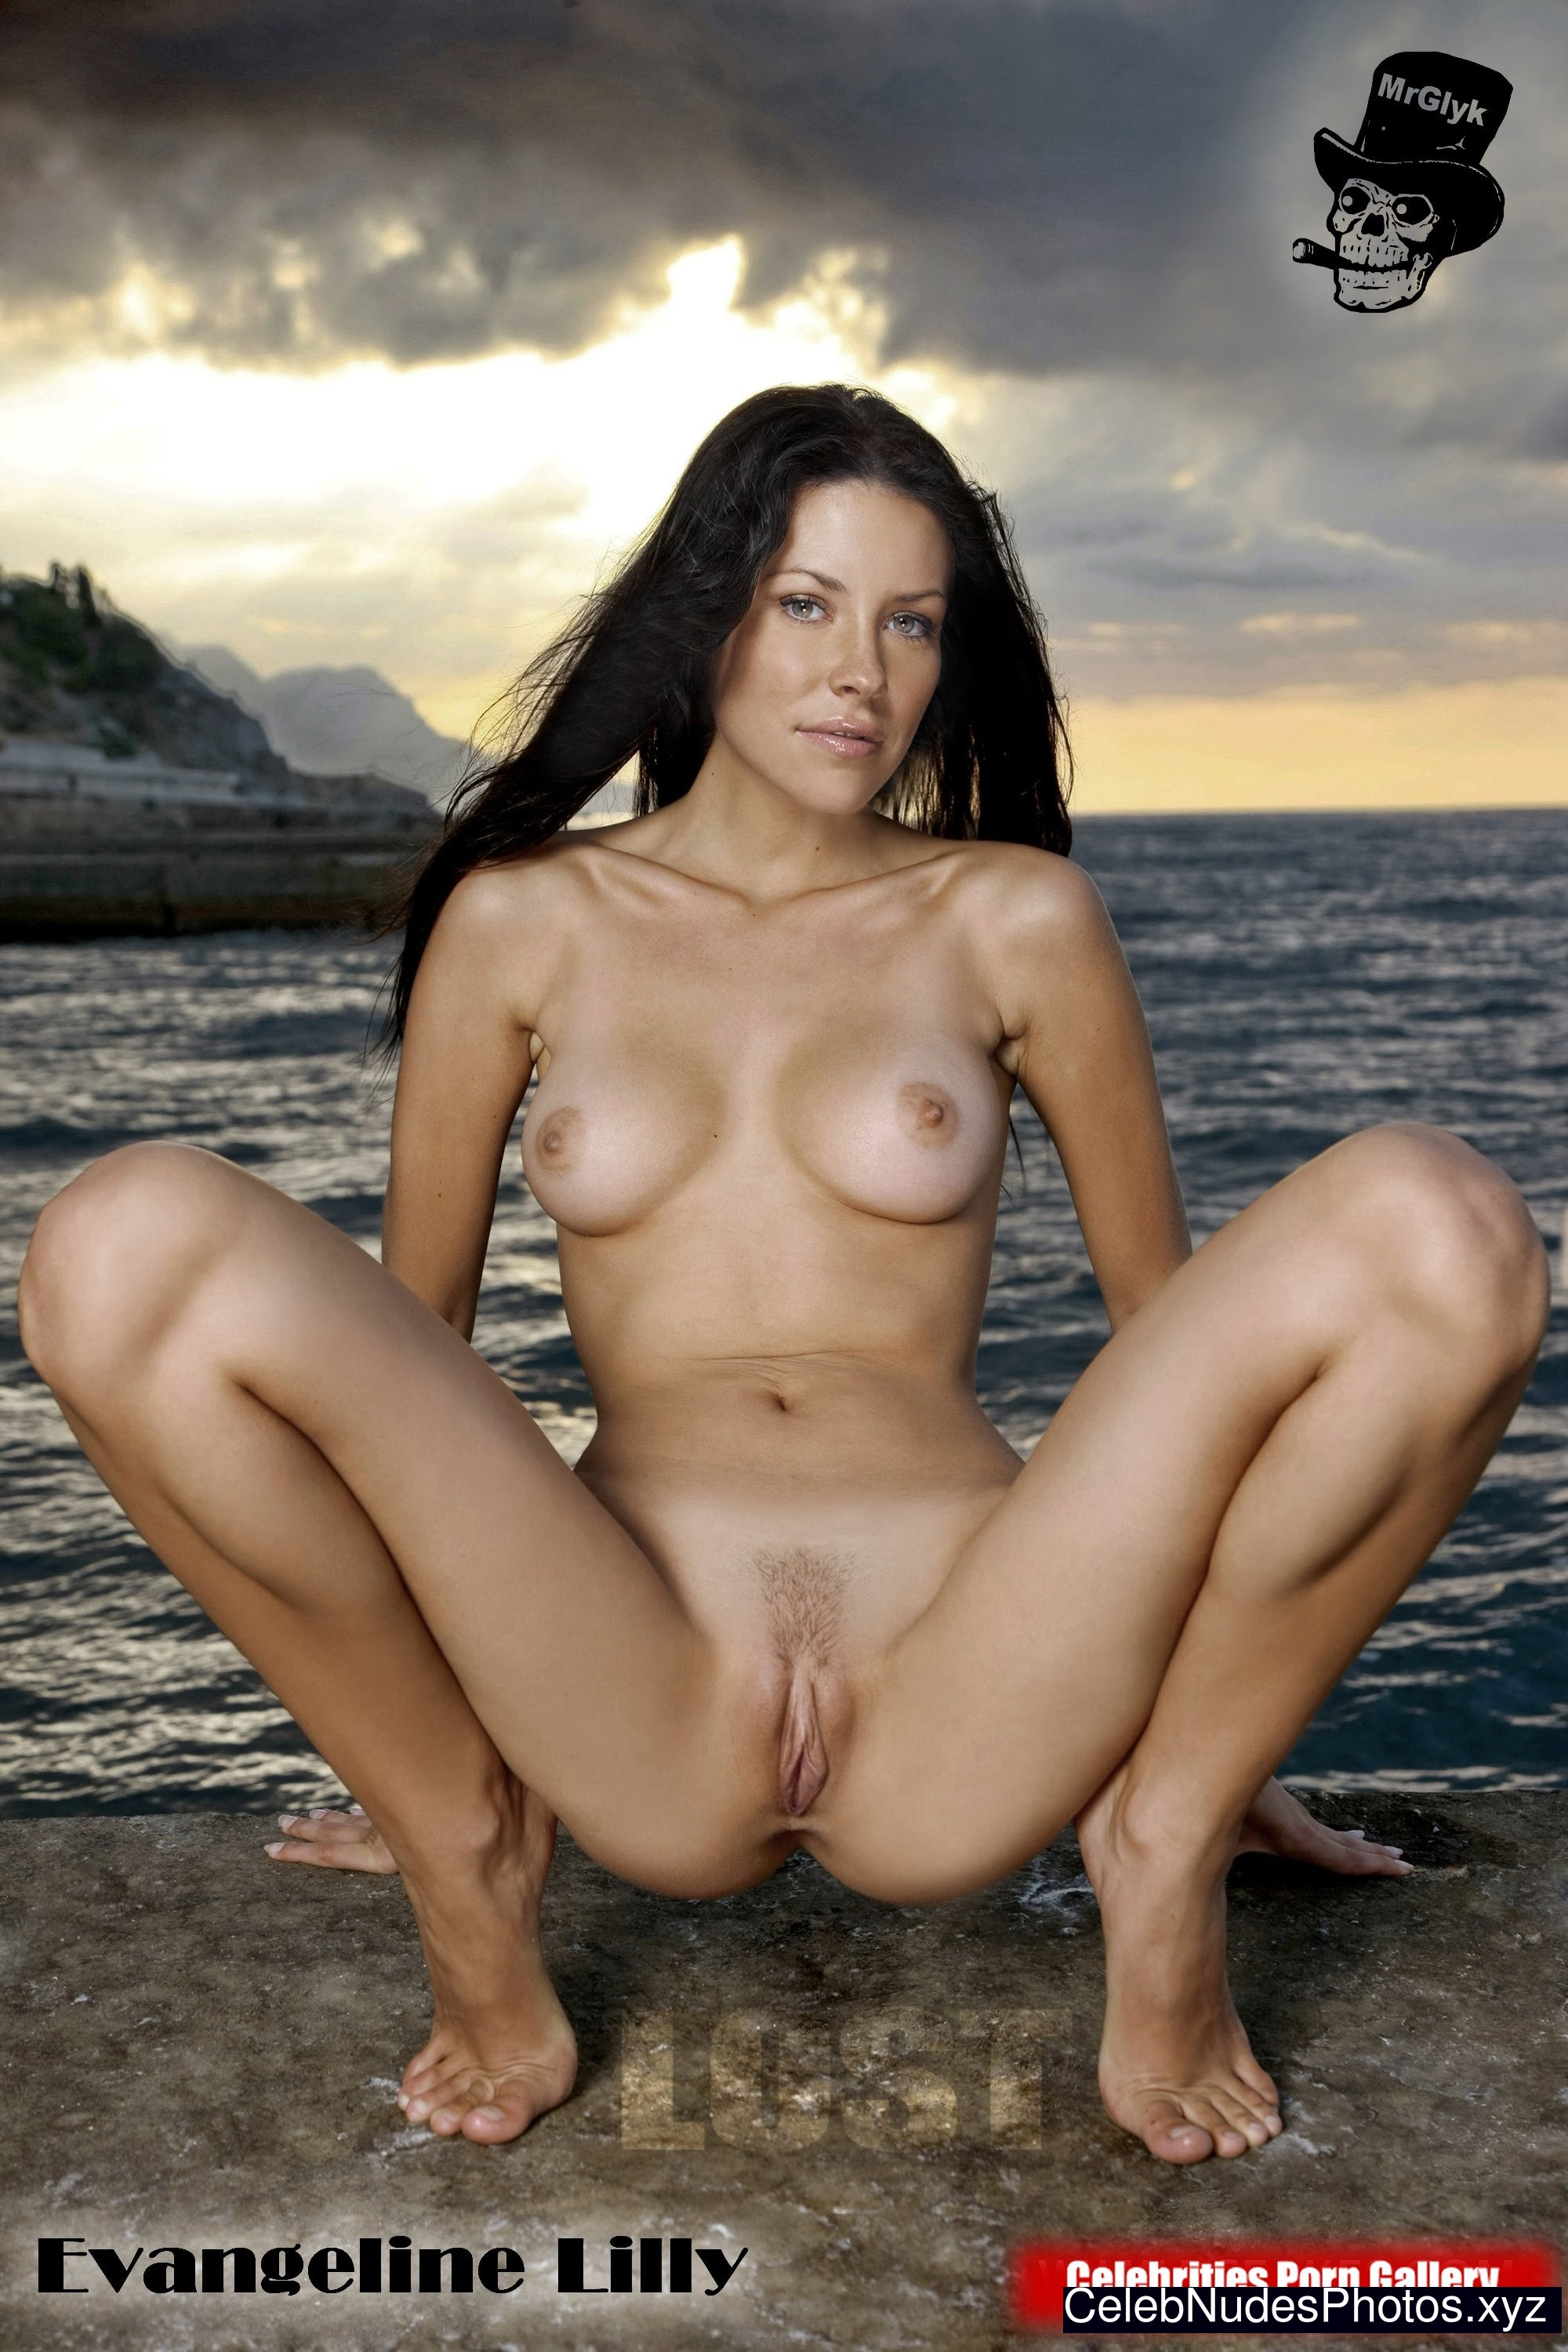 Opinion. Evangeline lilly nude pic